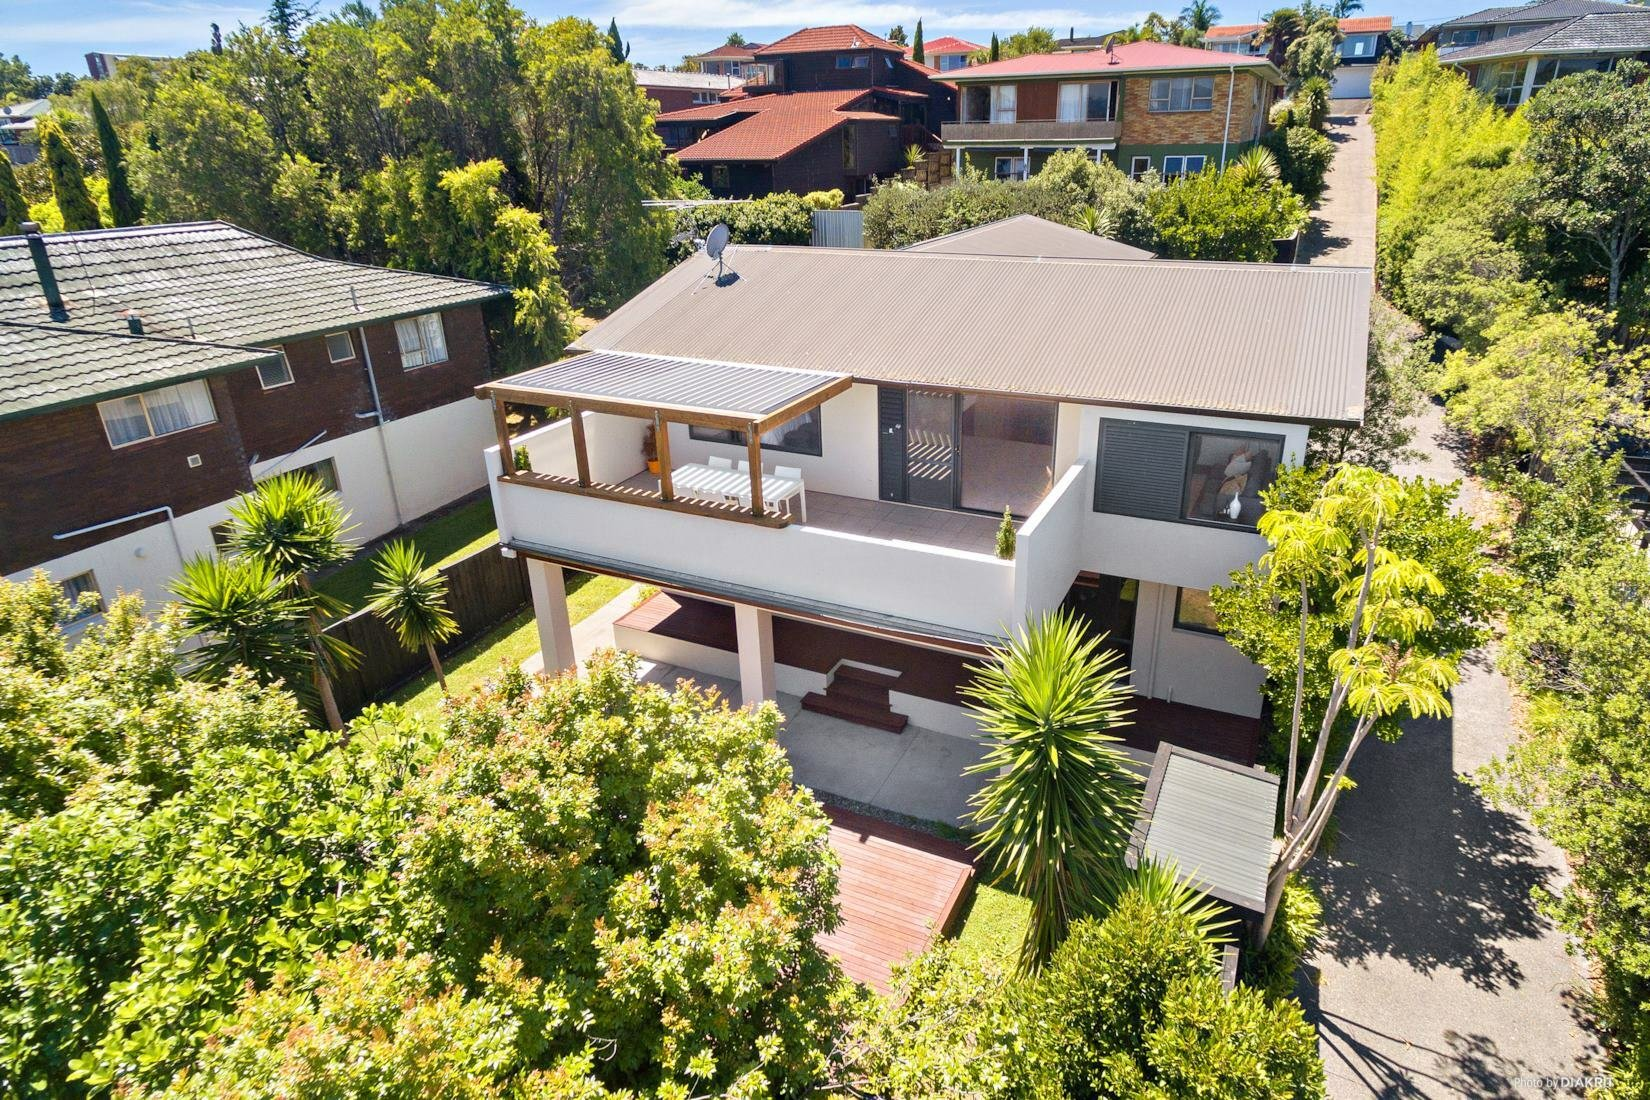 House in Point Chevalier, Auckland, New Zealand 1